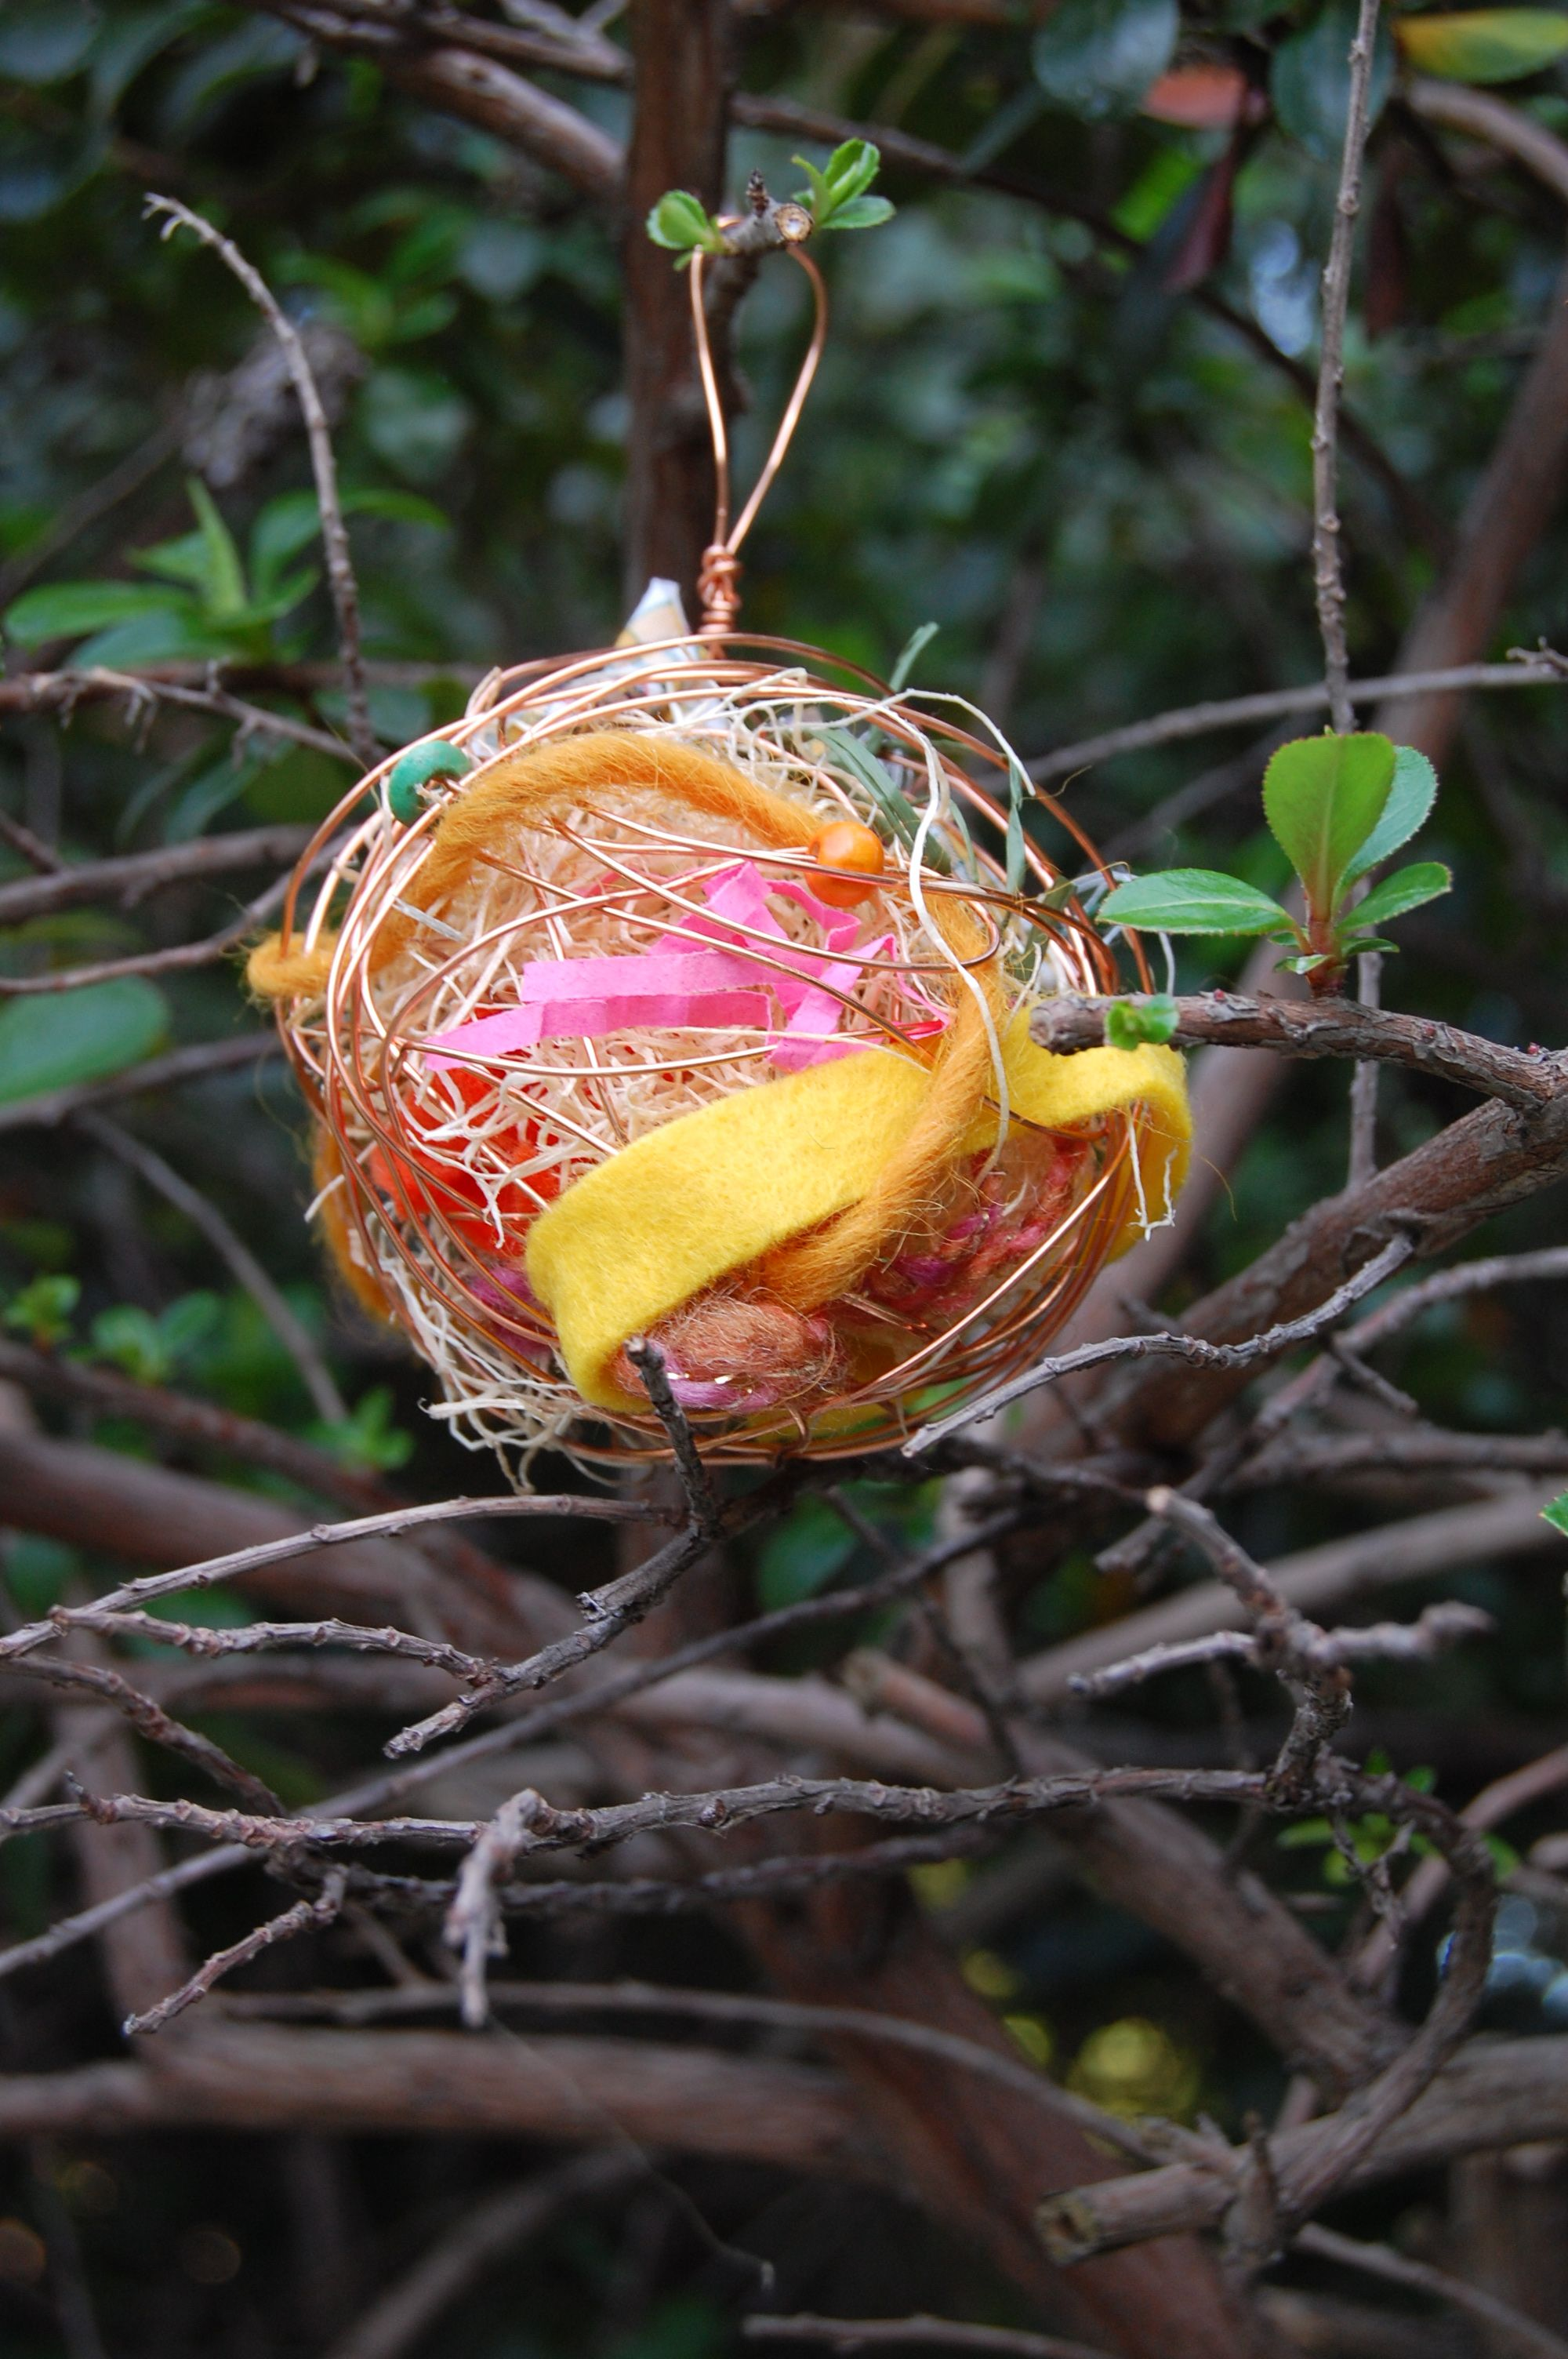 Nesting balls. Give the birds at your house a treat plus make the yard more colorful